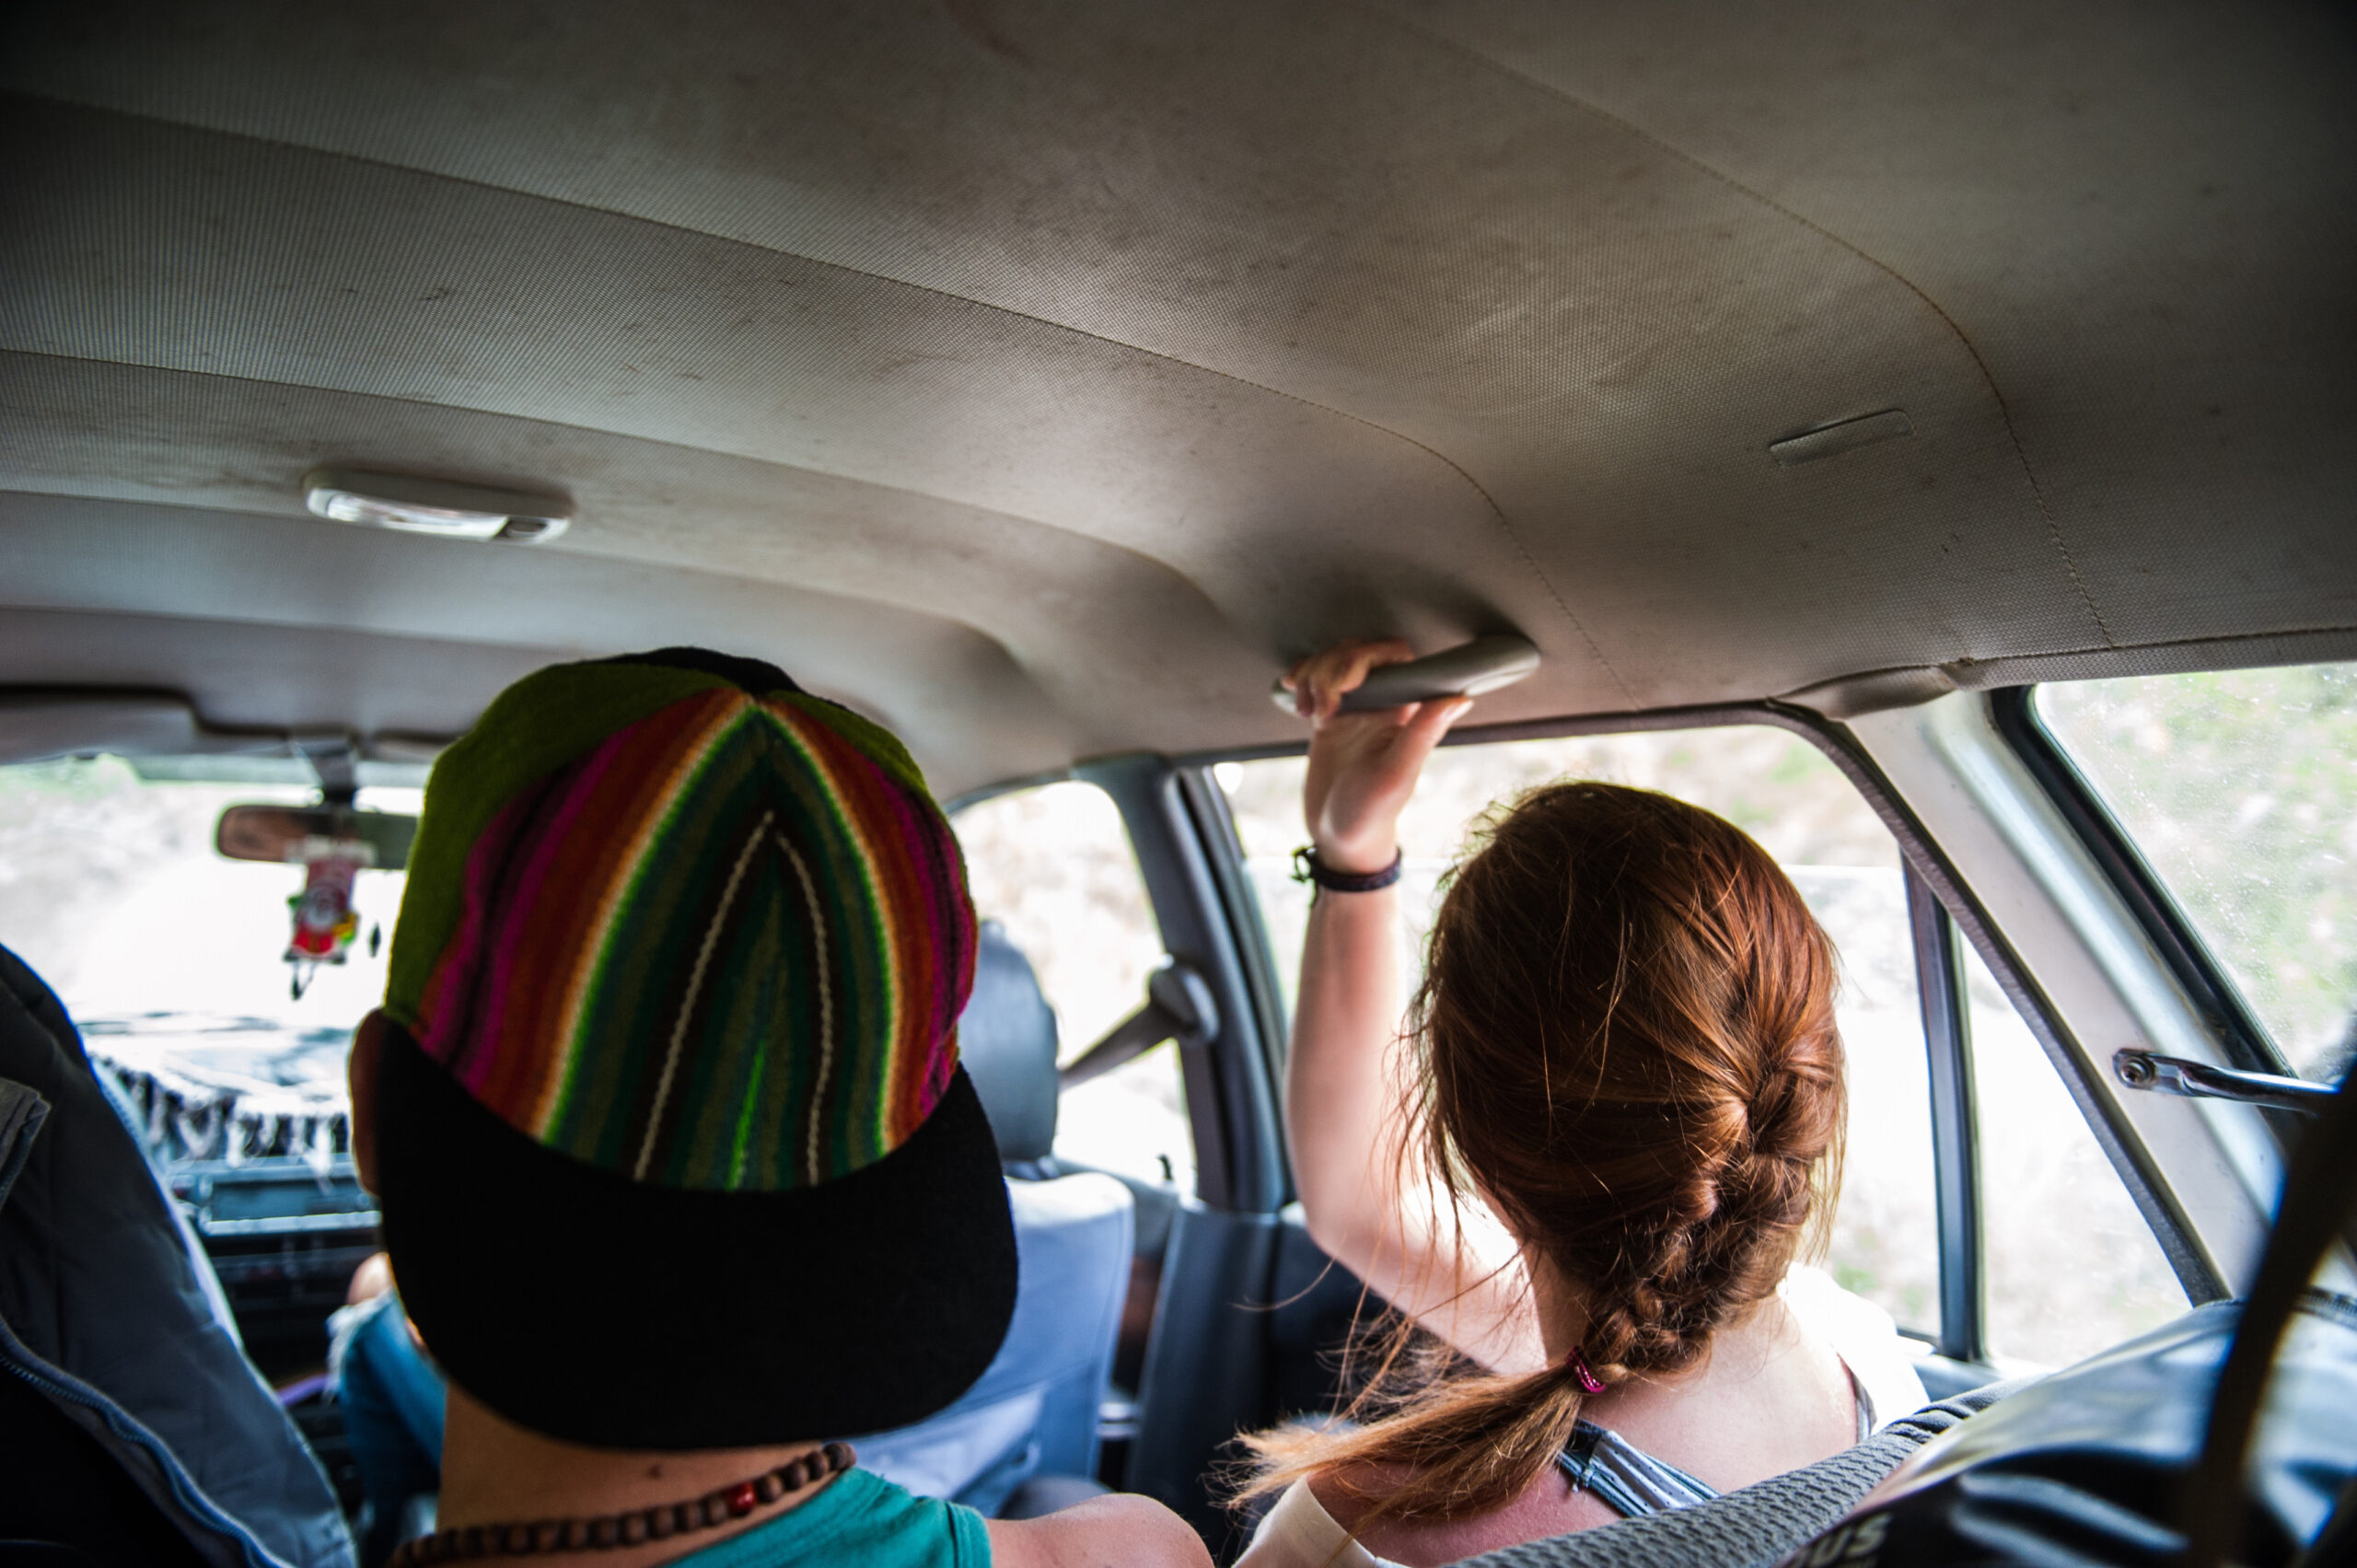 Two passengers in a shared taxi van in peru.